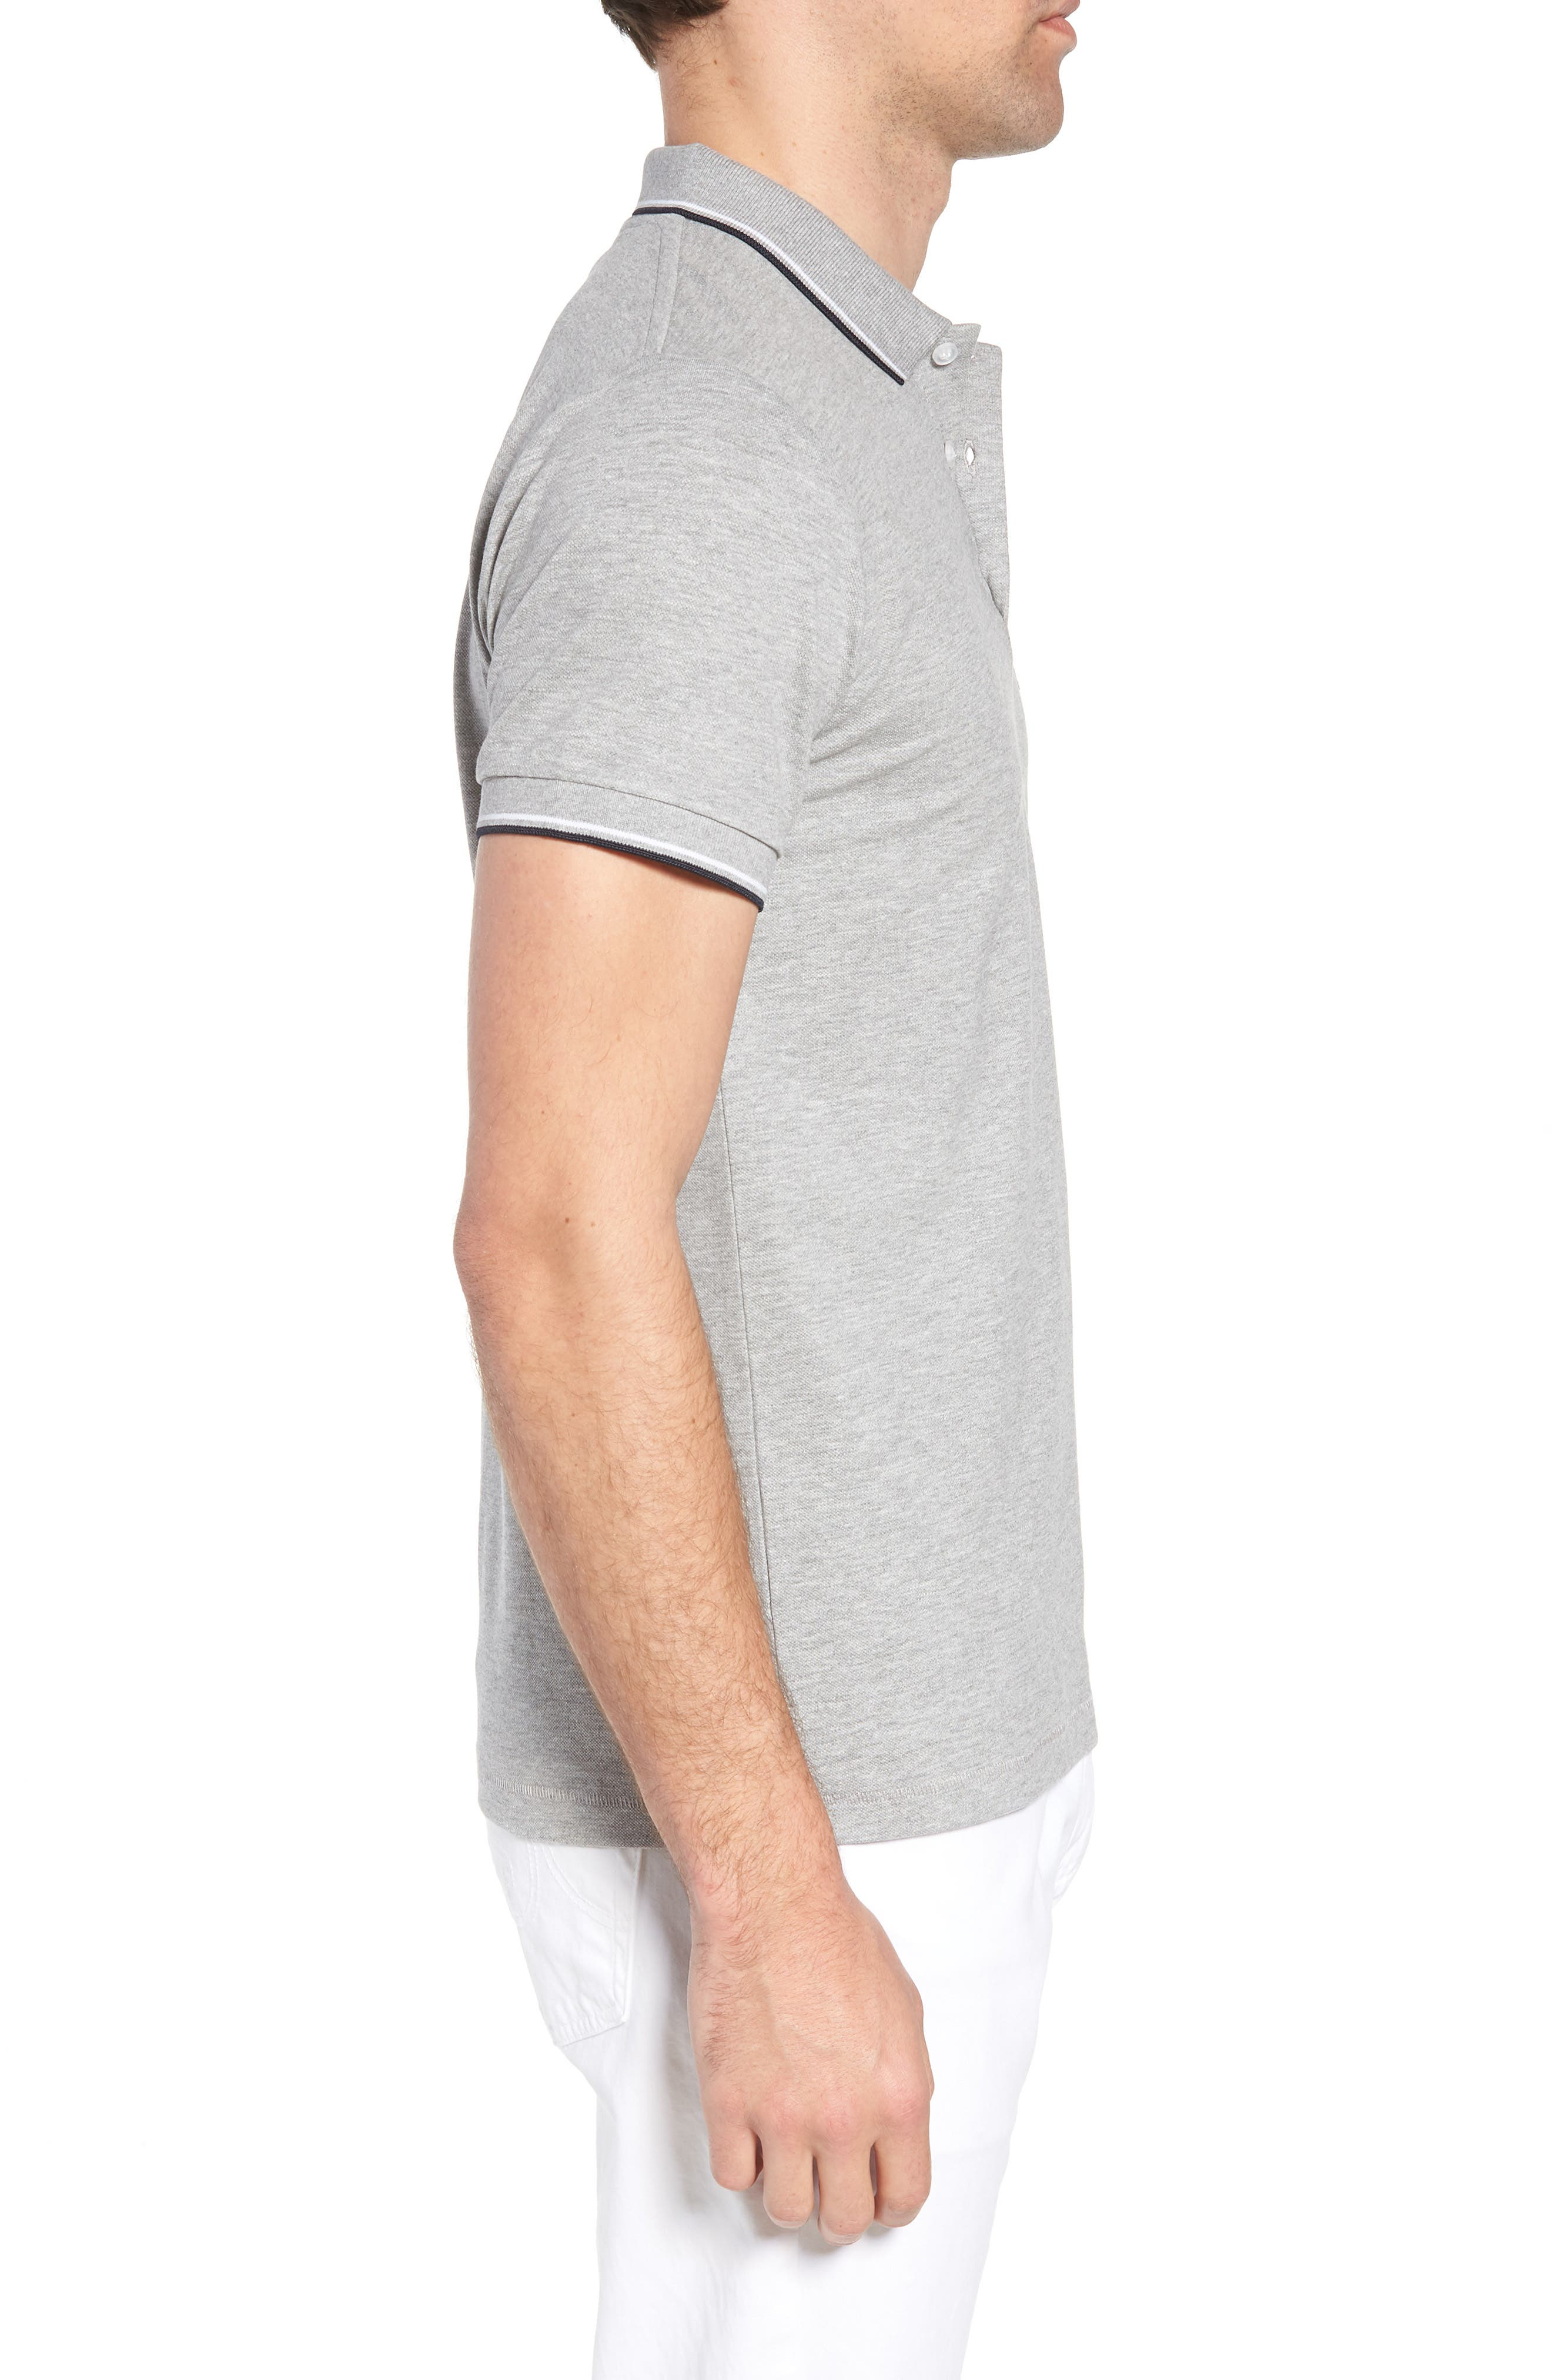 FRENCH CONNECTION, Cotton Polo Shirt, Alternate thumbnail 3, color, GREY MELANGE